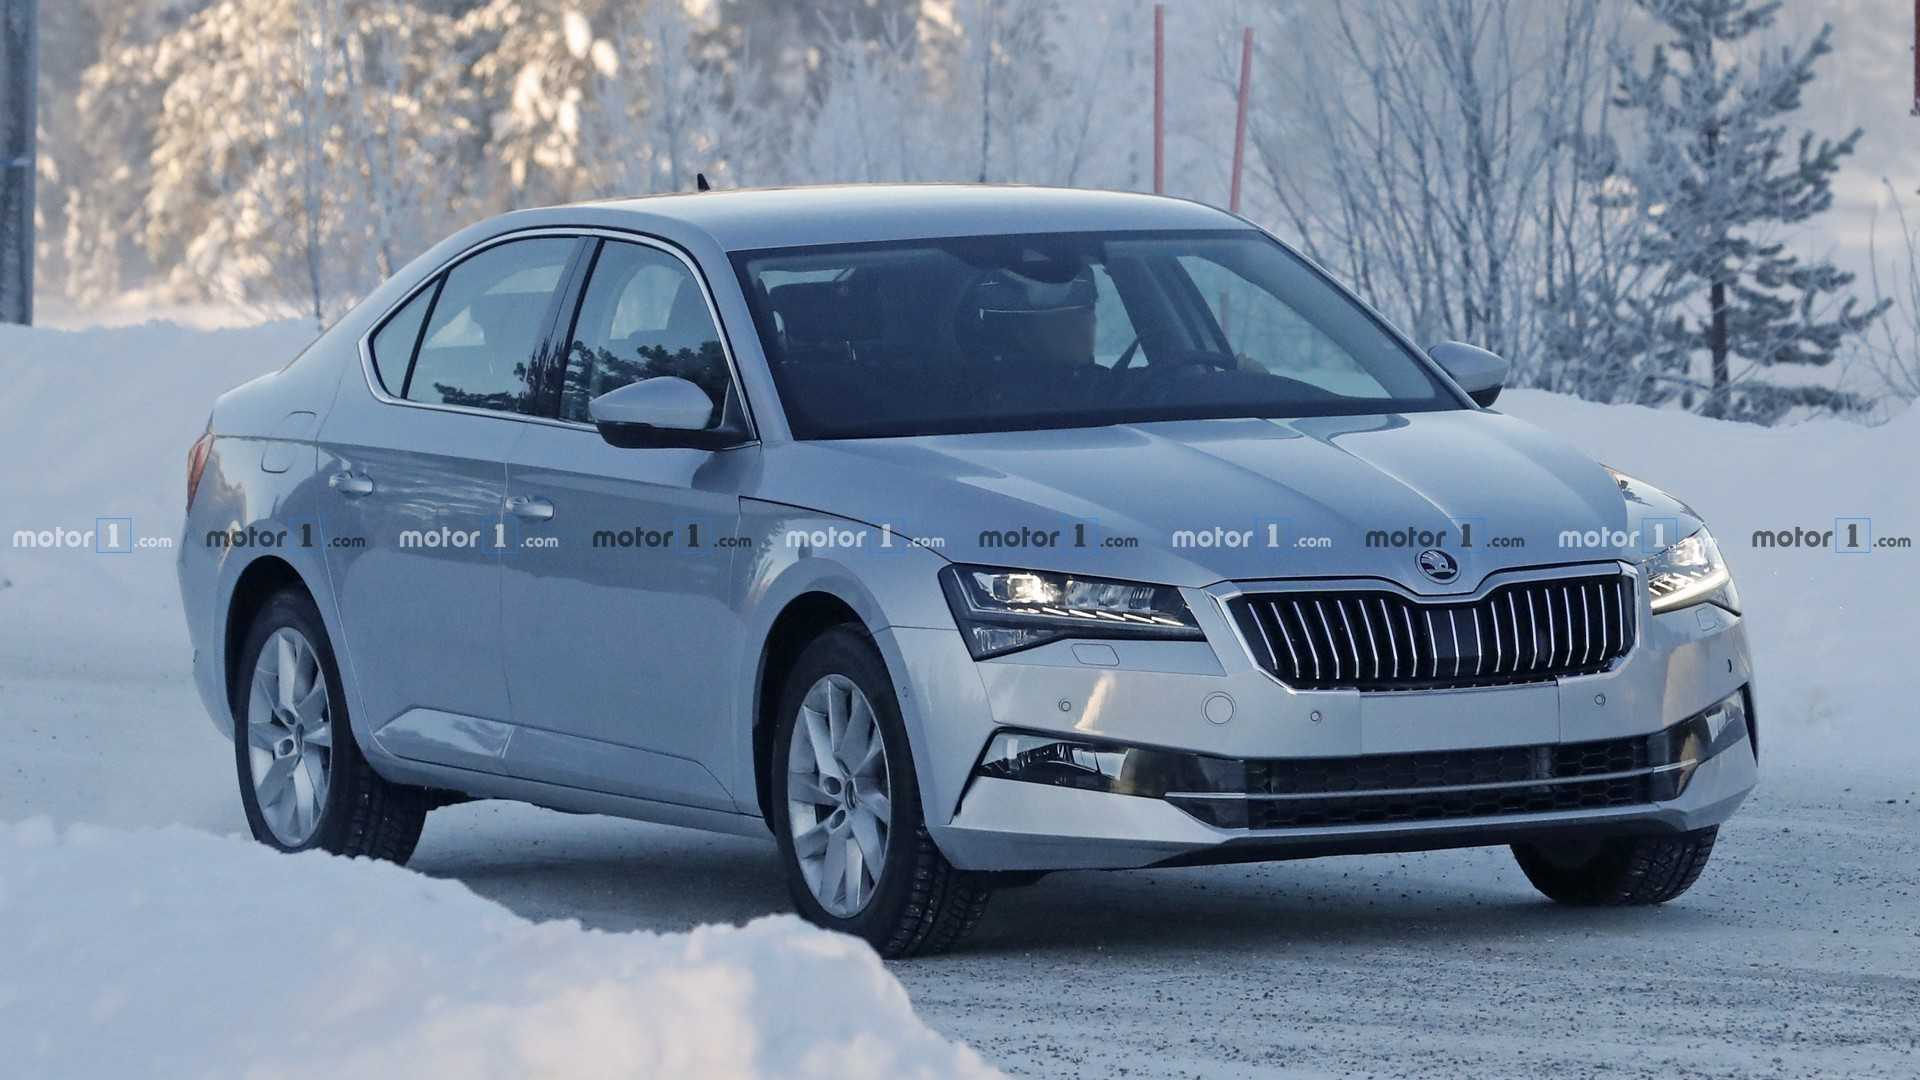 28 A Spy Shots Skoda Superb Price